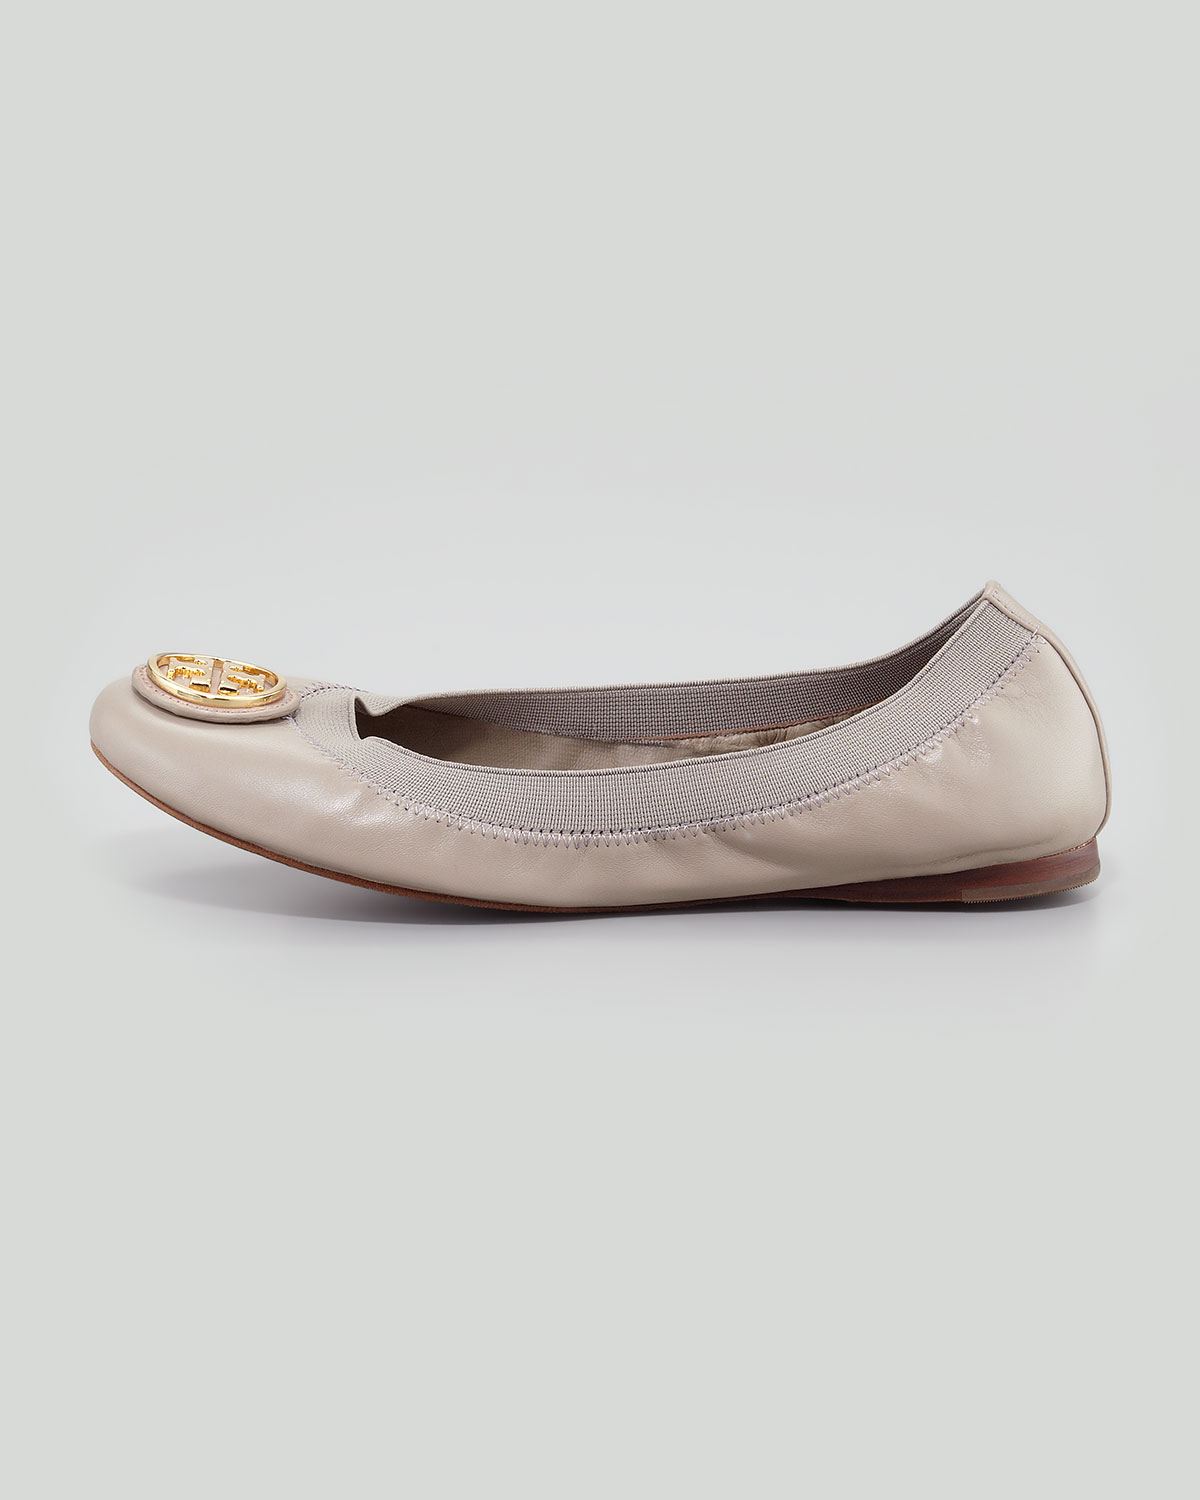 75ab79f20c52 Lyst - Tory Burch Caroline 2 Leather Stretch Ballerina Flats Dust ...